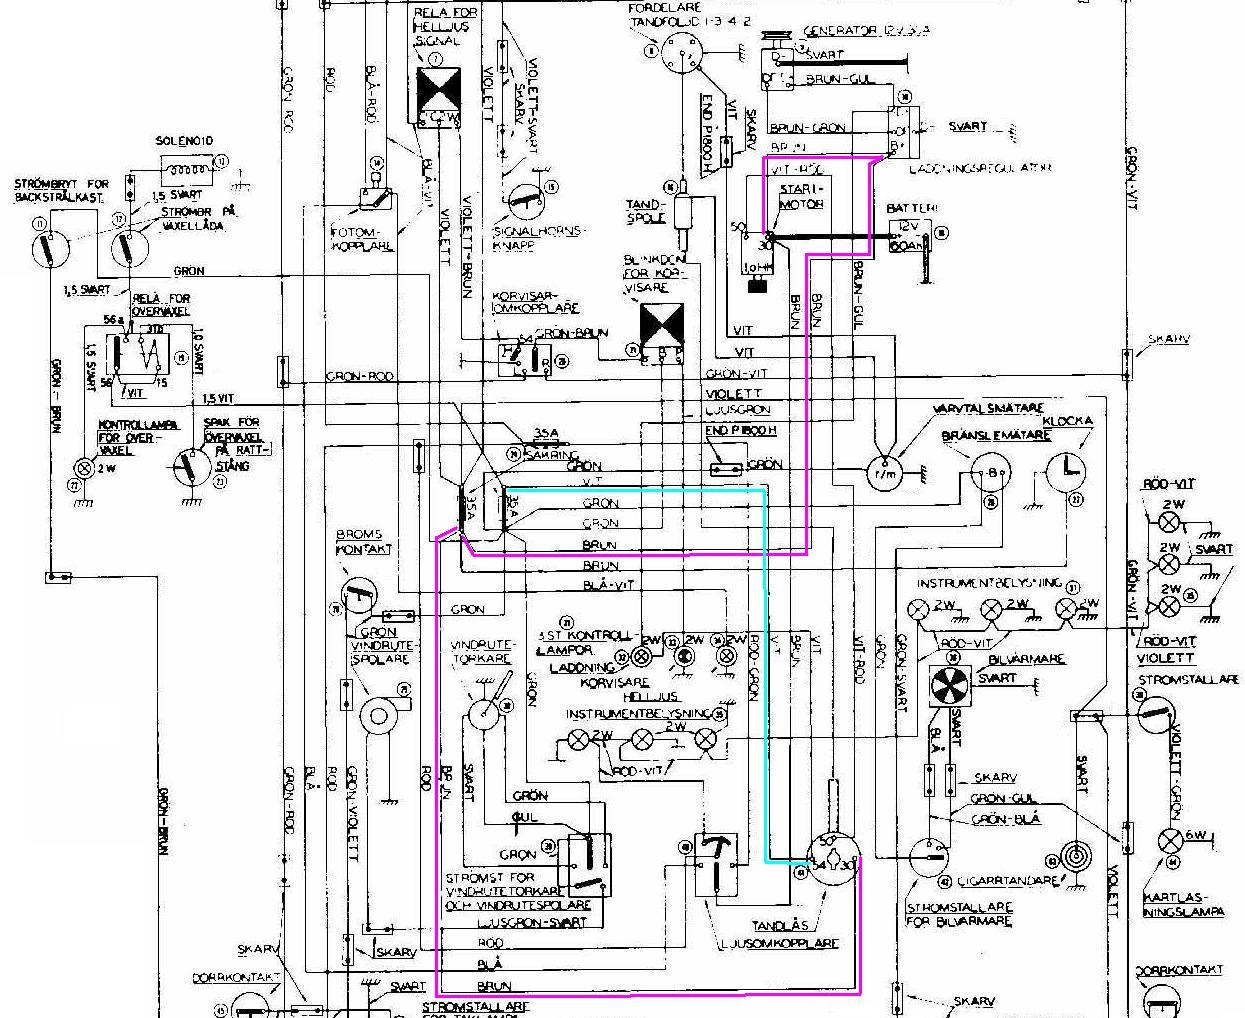 1800 Wiring Diagram marked up 1800 ignition wiring swedish vs british design  at fashall.co